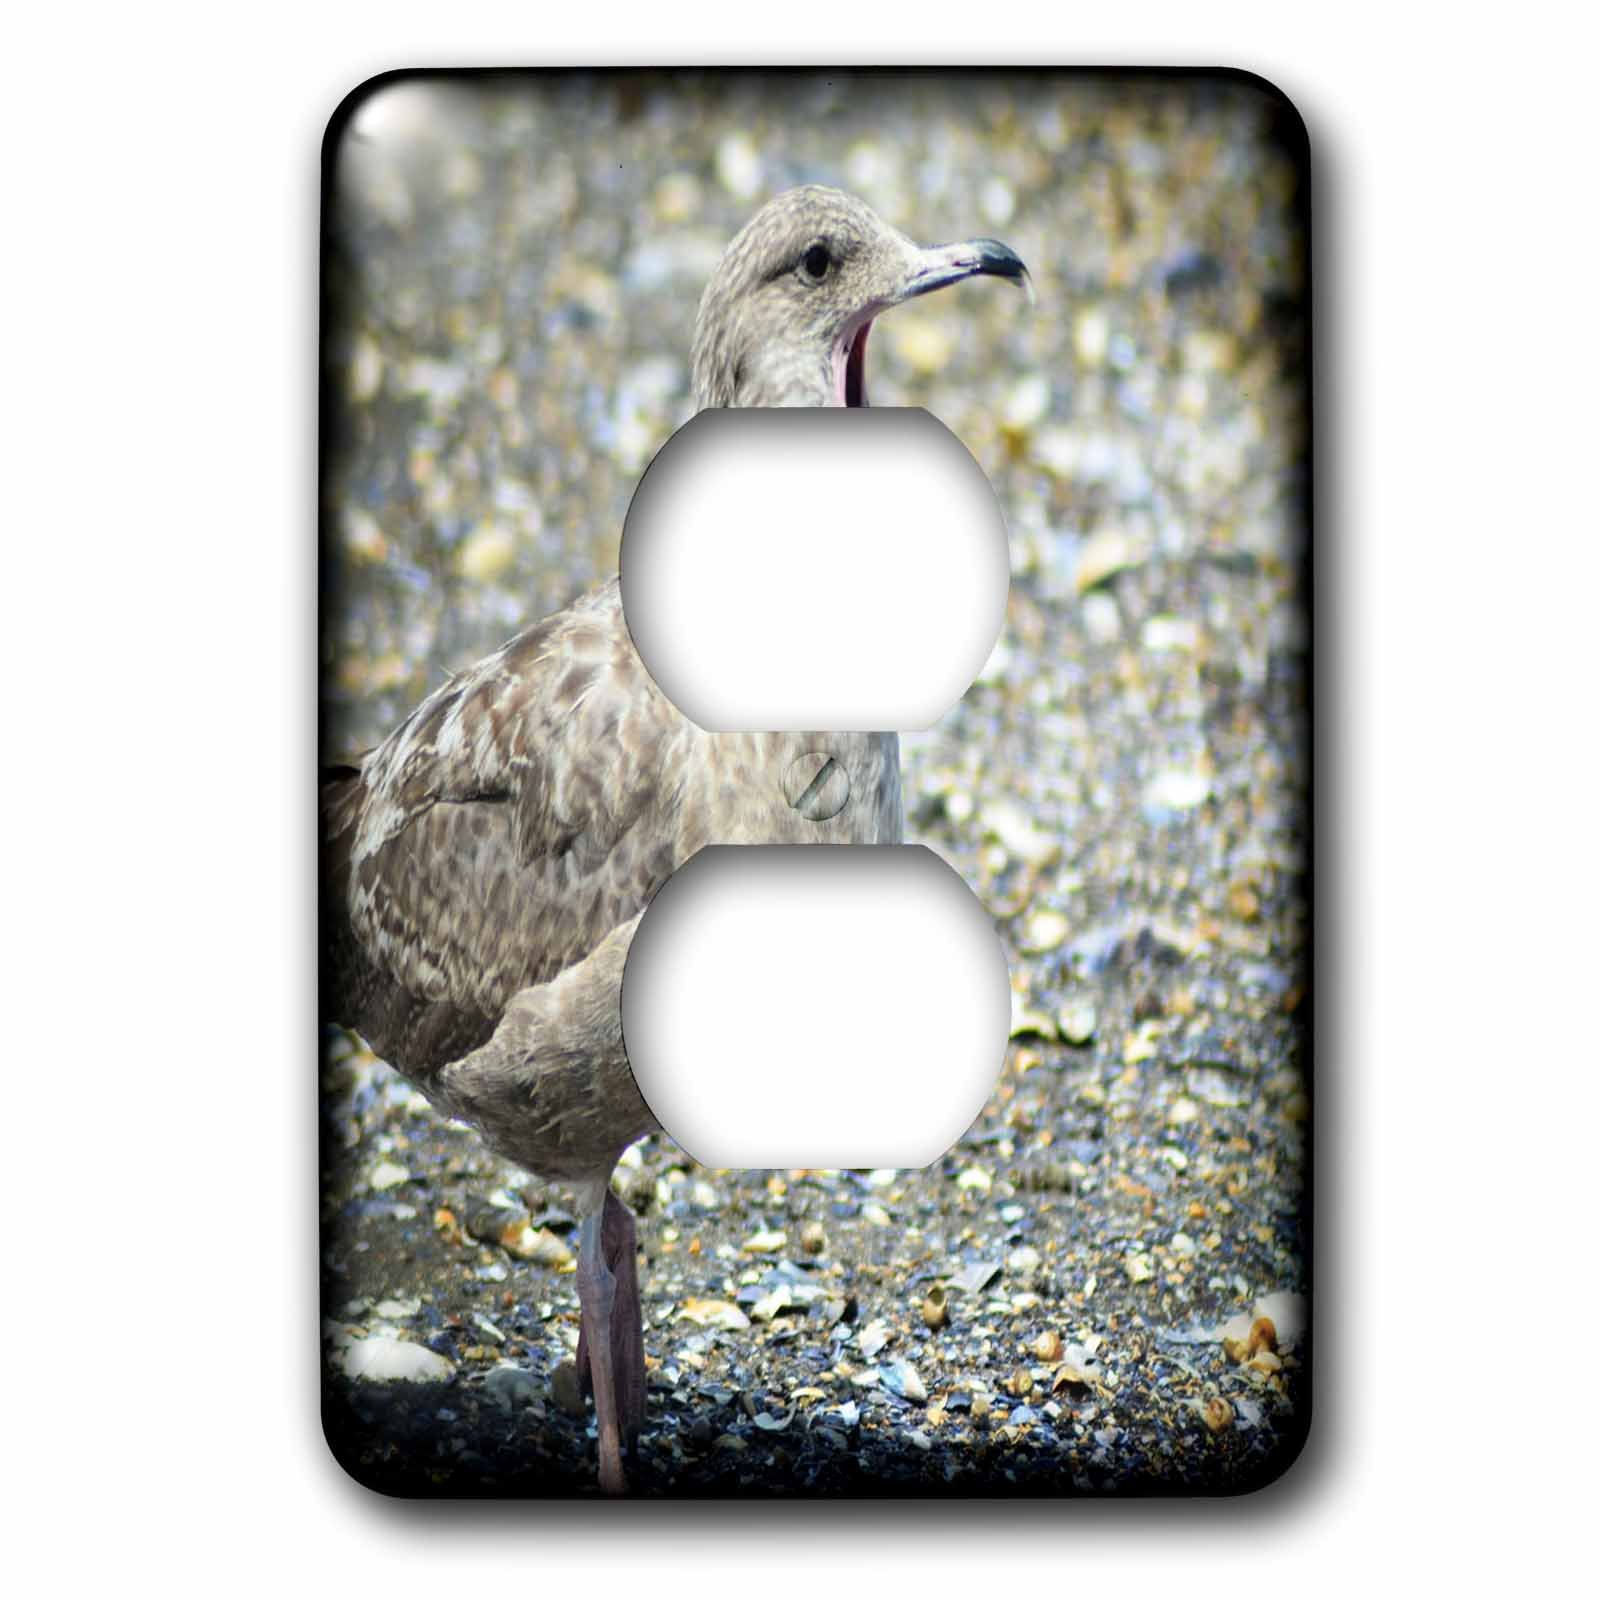 3dRose WhiteOaks Photography and Artwork - Seagulls - Seagull Talking is a seagull that looks like it is talking - Light Switch Covers - 2 plug outlet cover (lsp_265366_6)